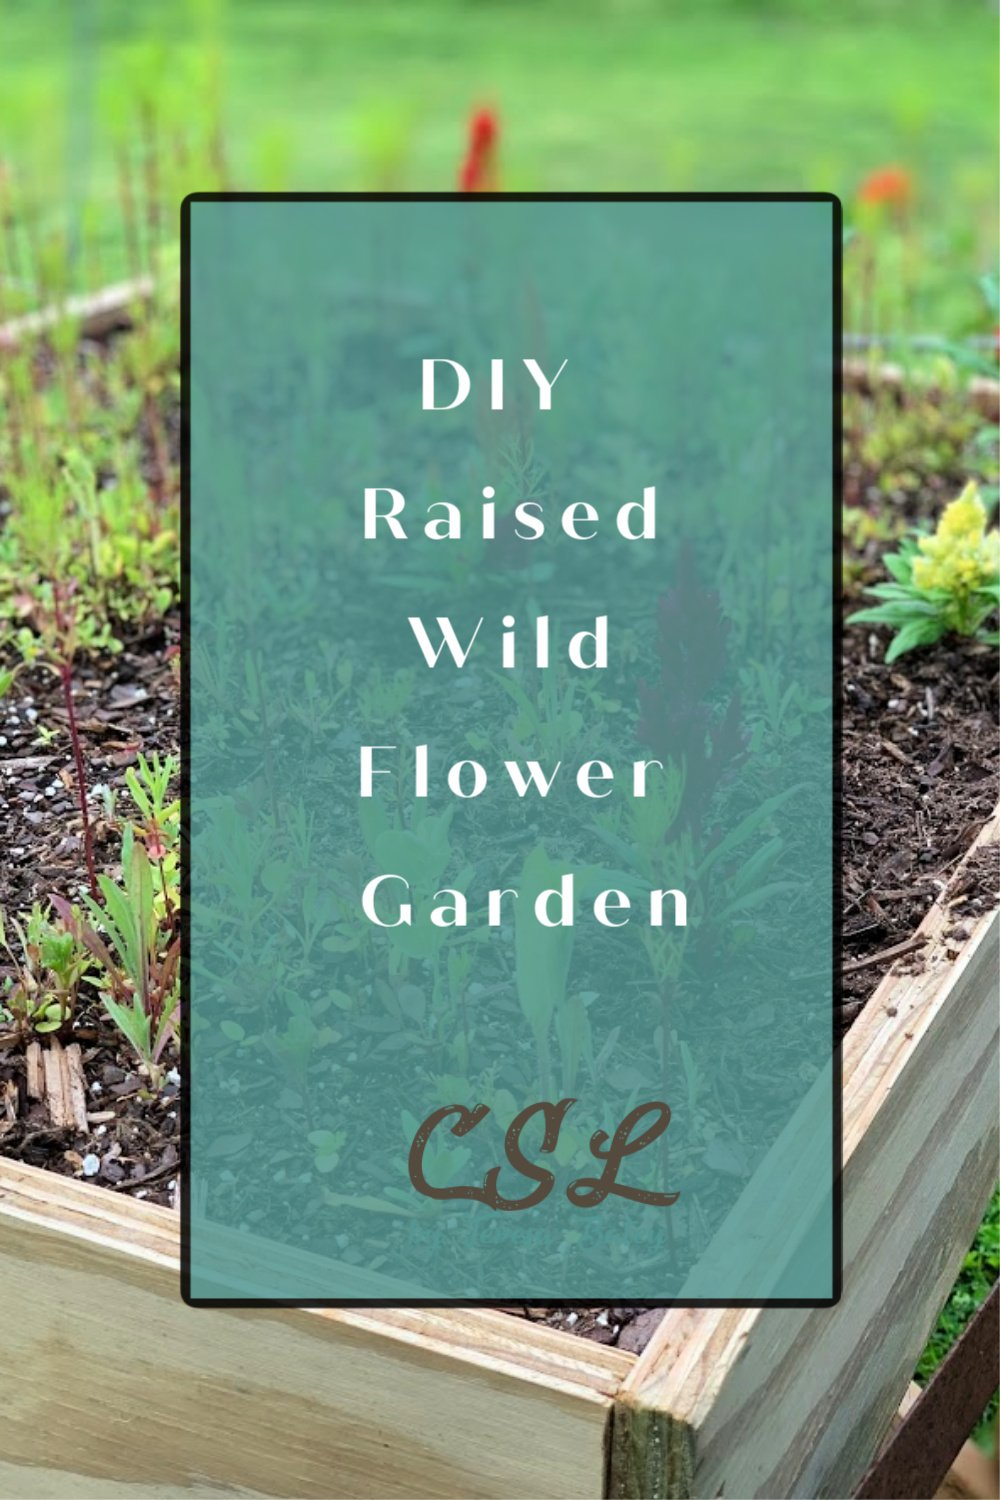 DIY Raised Wild Flower Garden